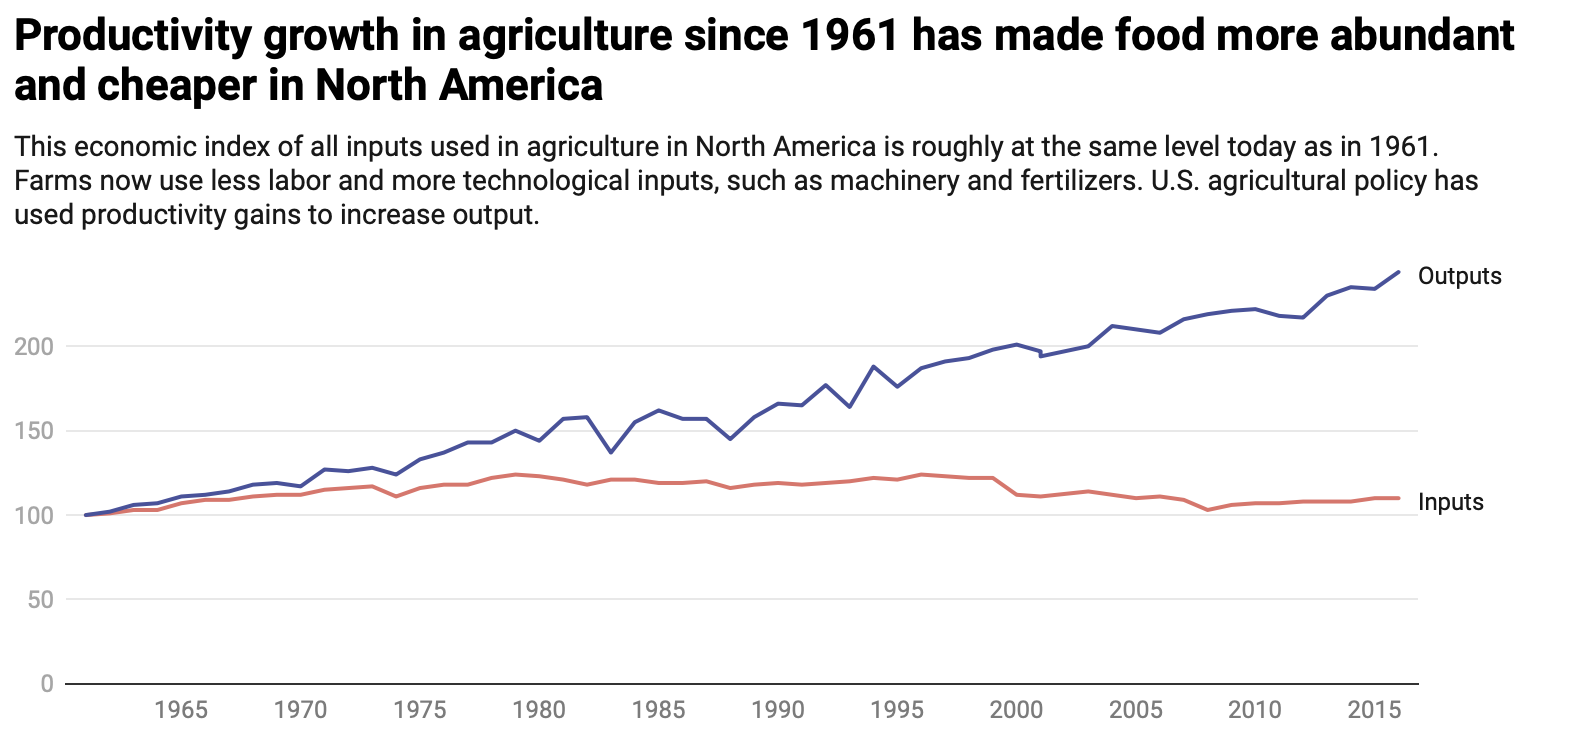 economic index of all agricultural inputs